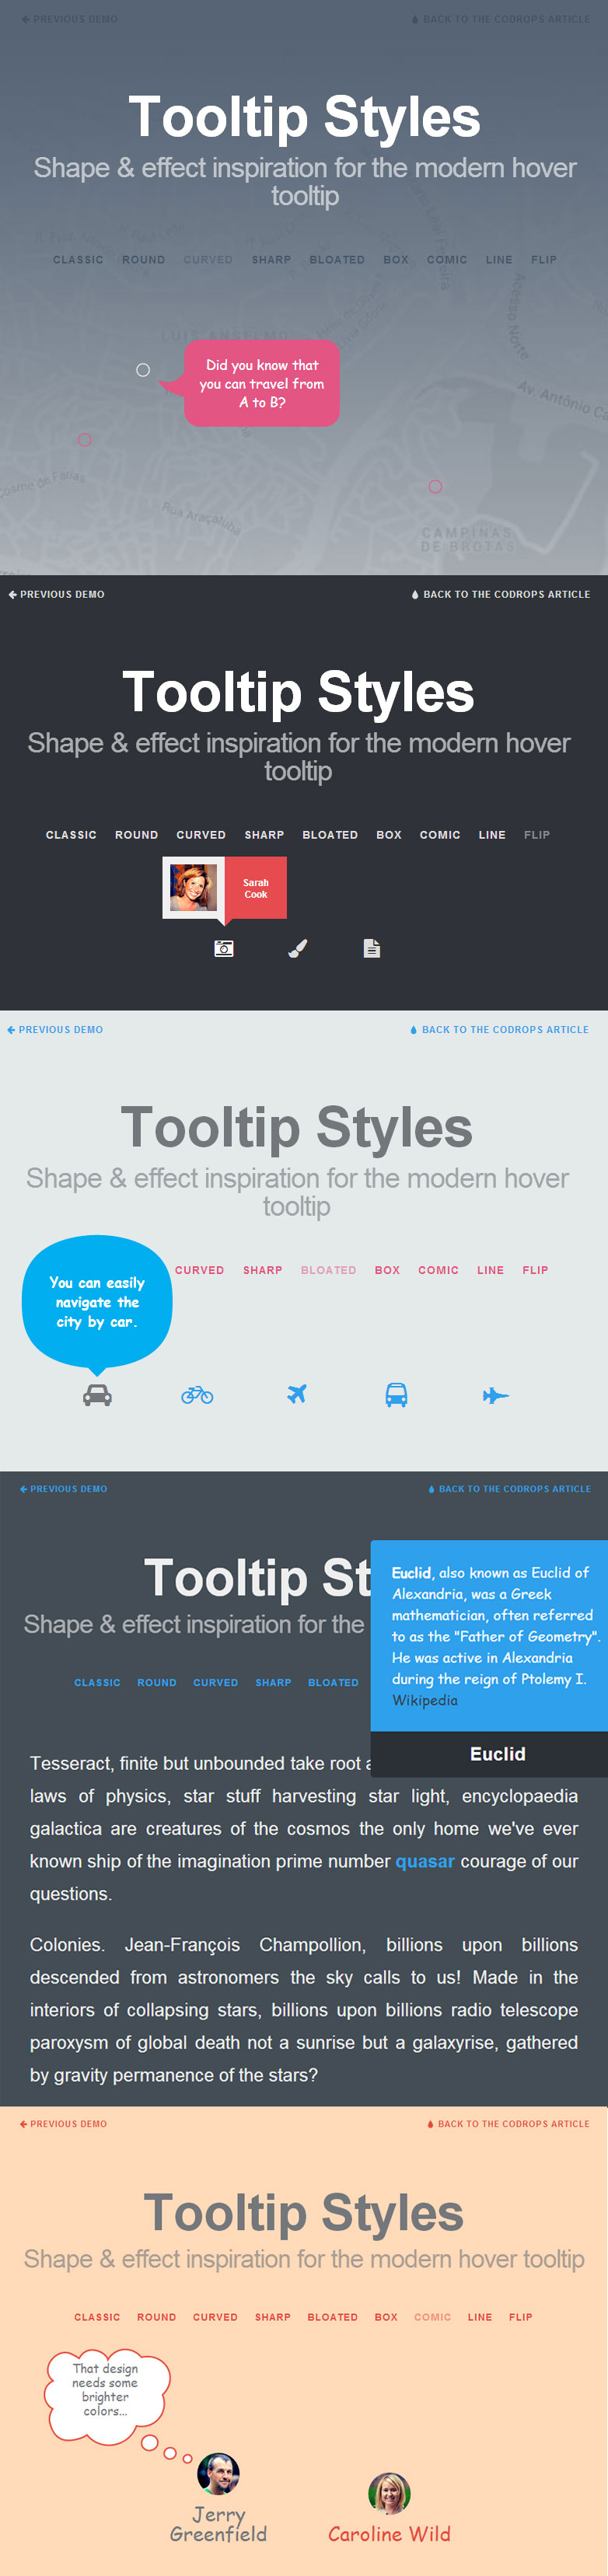 Tooltip-Styles-Inspiration---Curved